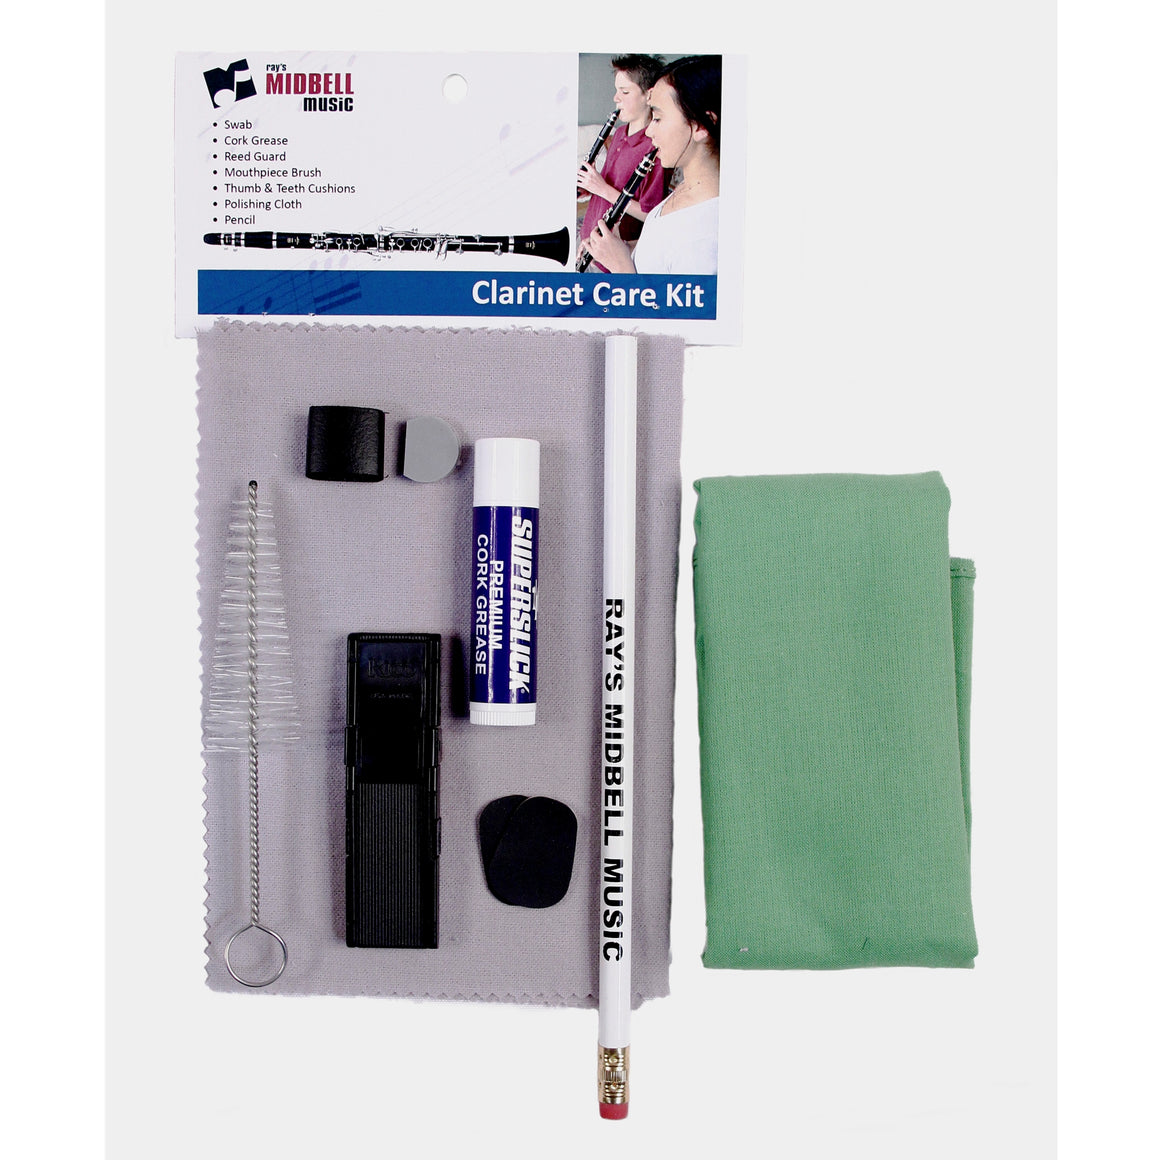 MIDBELL ICCK Clarinet Care Kit